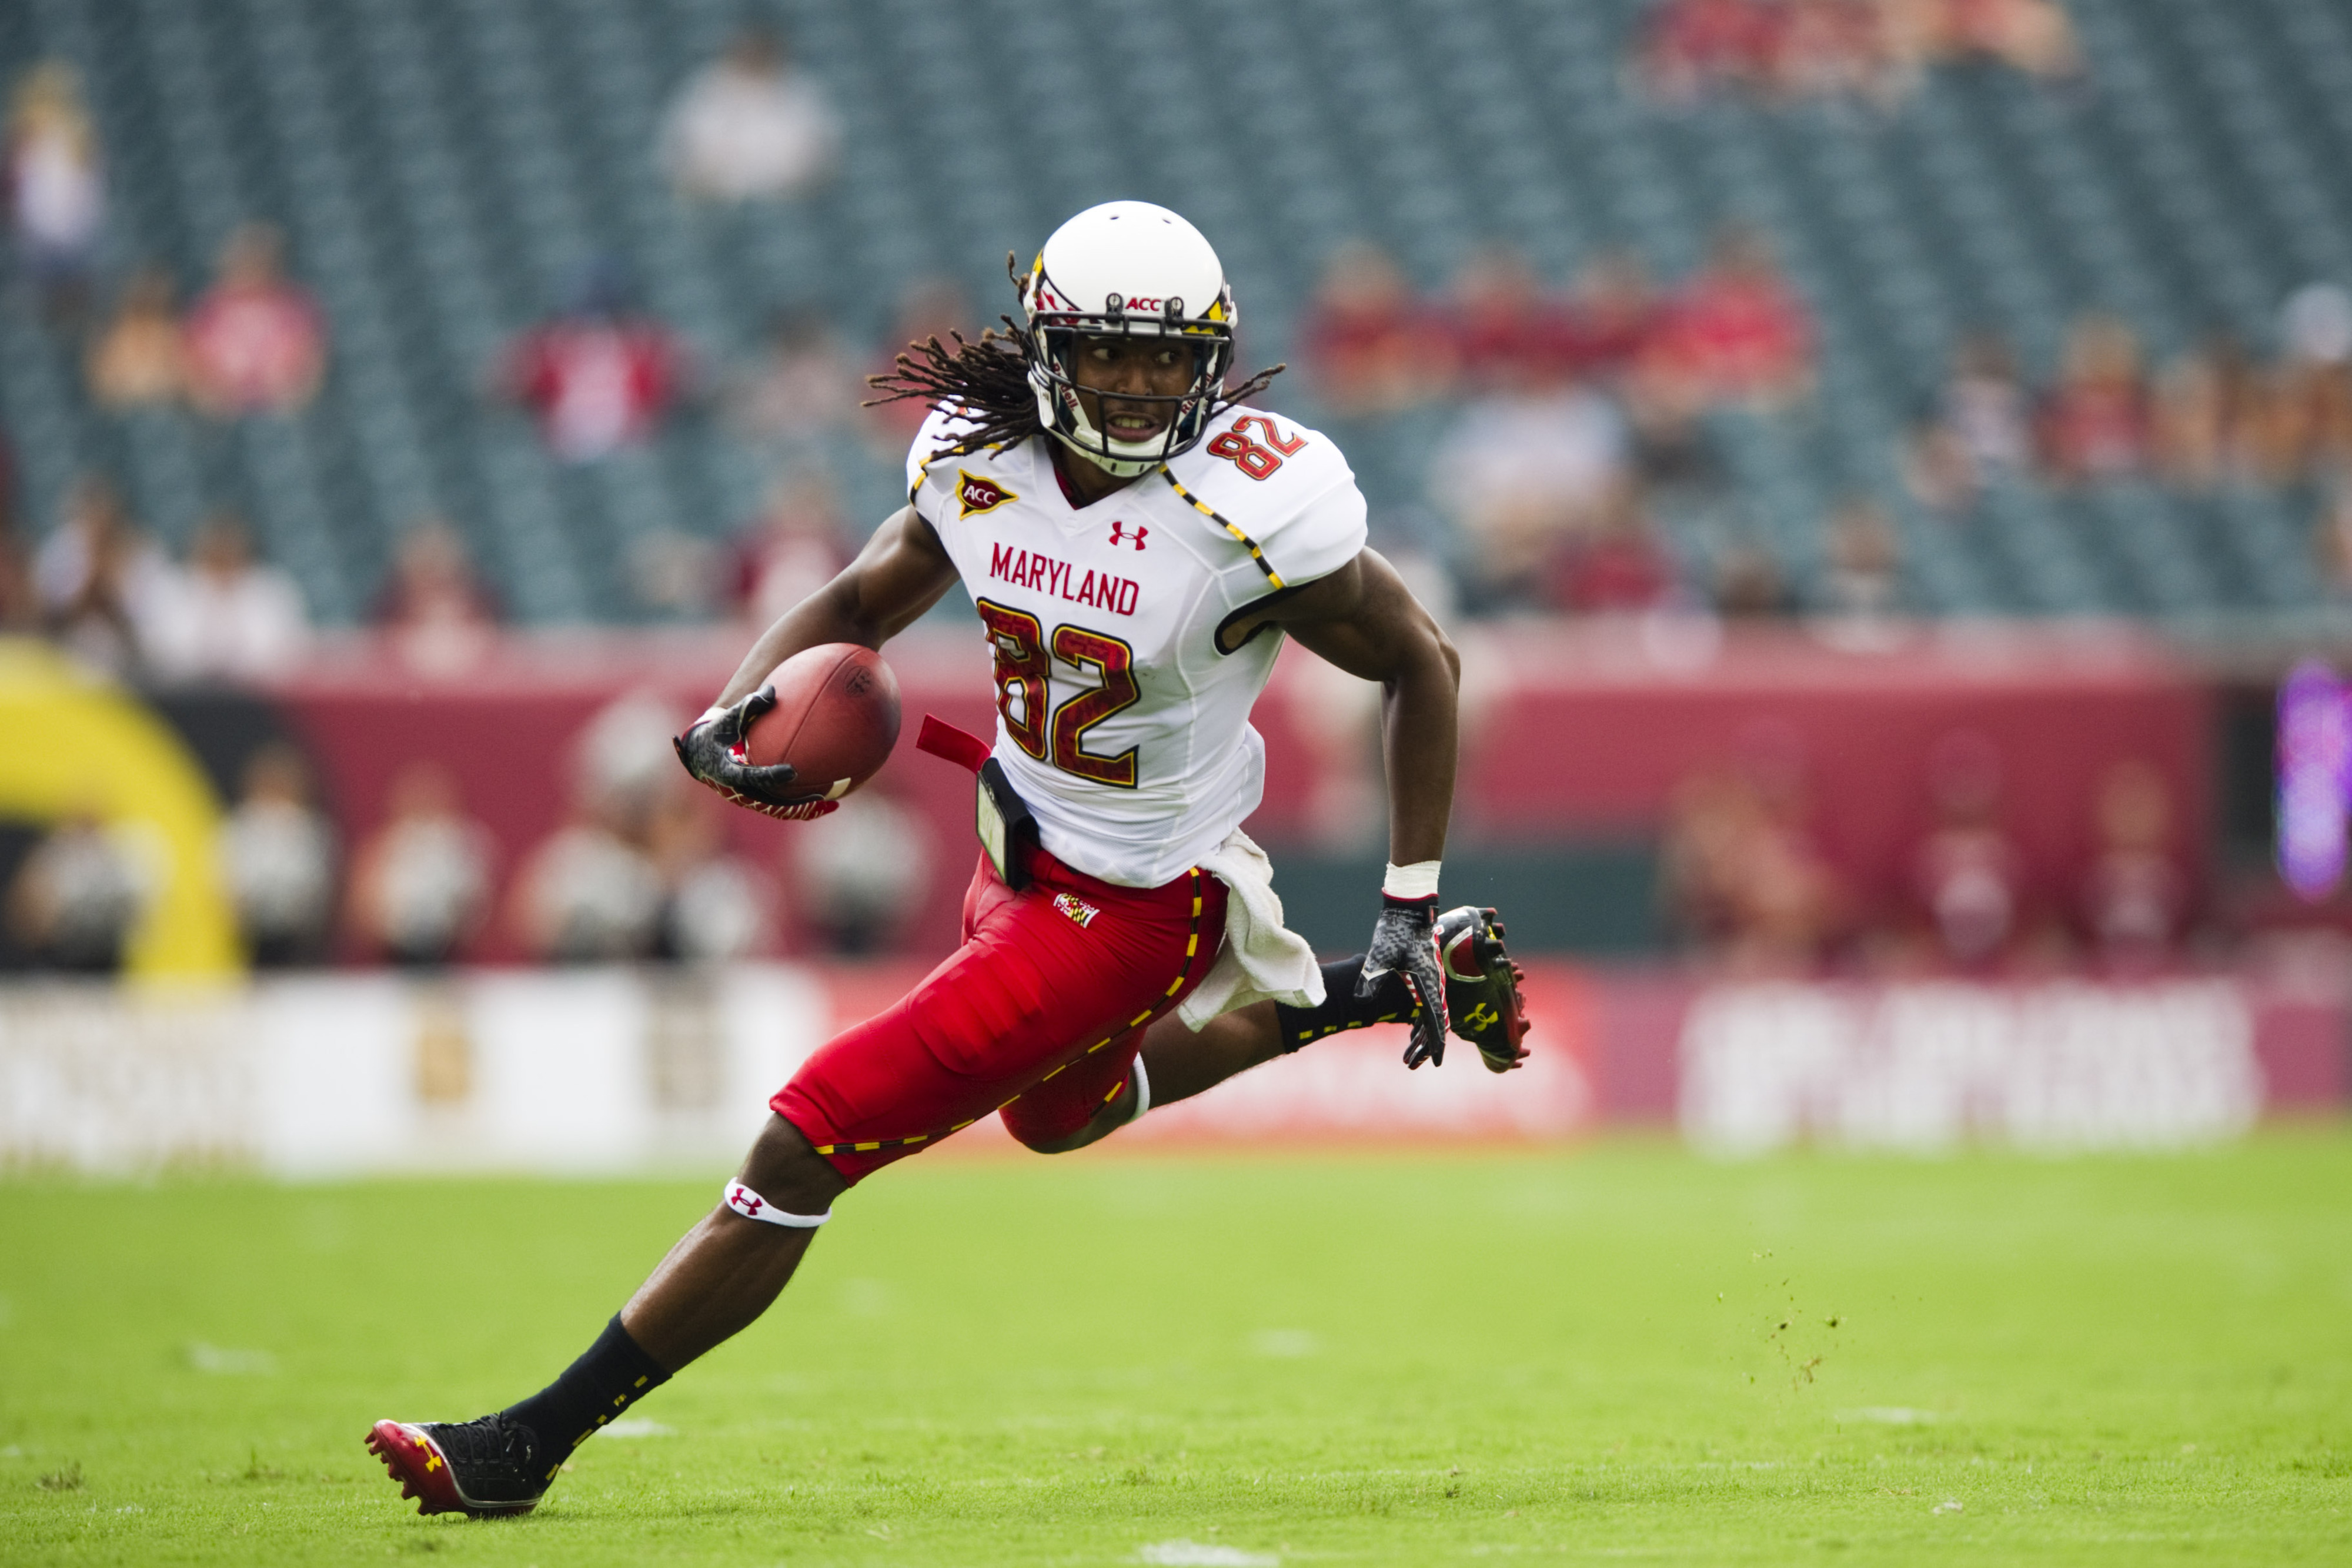 Sep 08, 2012; Philadelphia, PA, USA; Maryland Terrapins wide receiver  Marcus Leak (82) carries the ball during the first quarter against the Temple Owls at Lincoln Financial Field. Mandatory Credit: Howard Smith-US PRESSWIRE